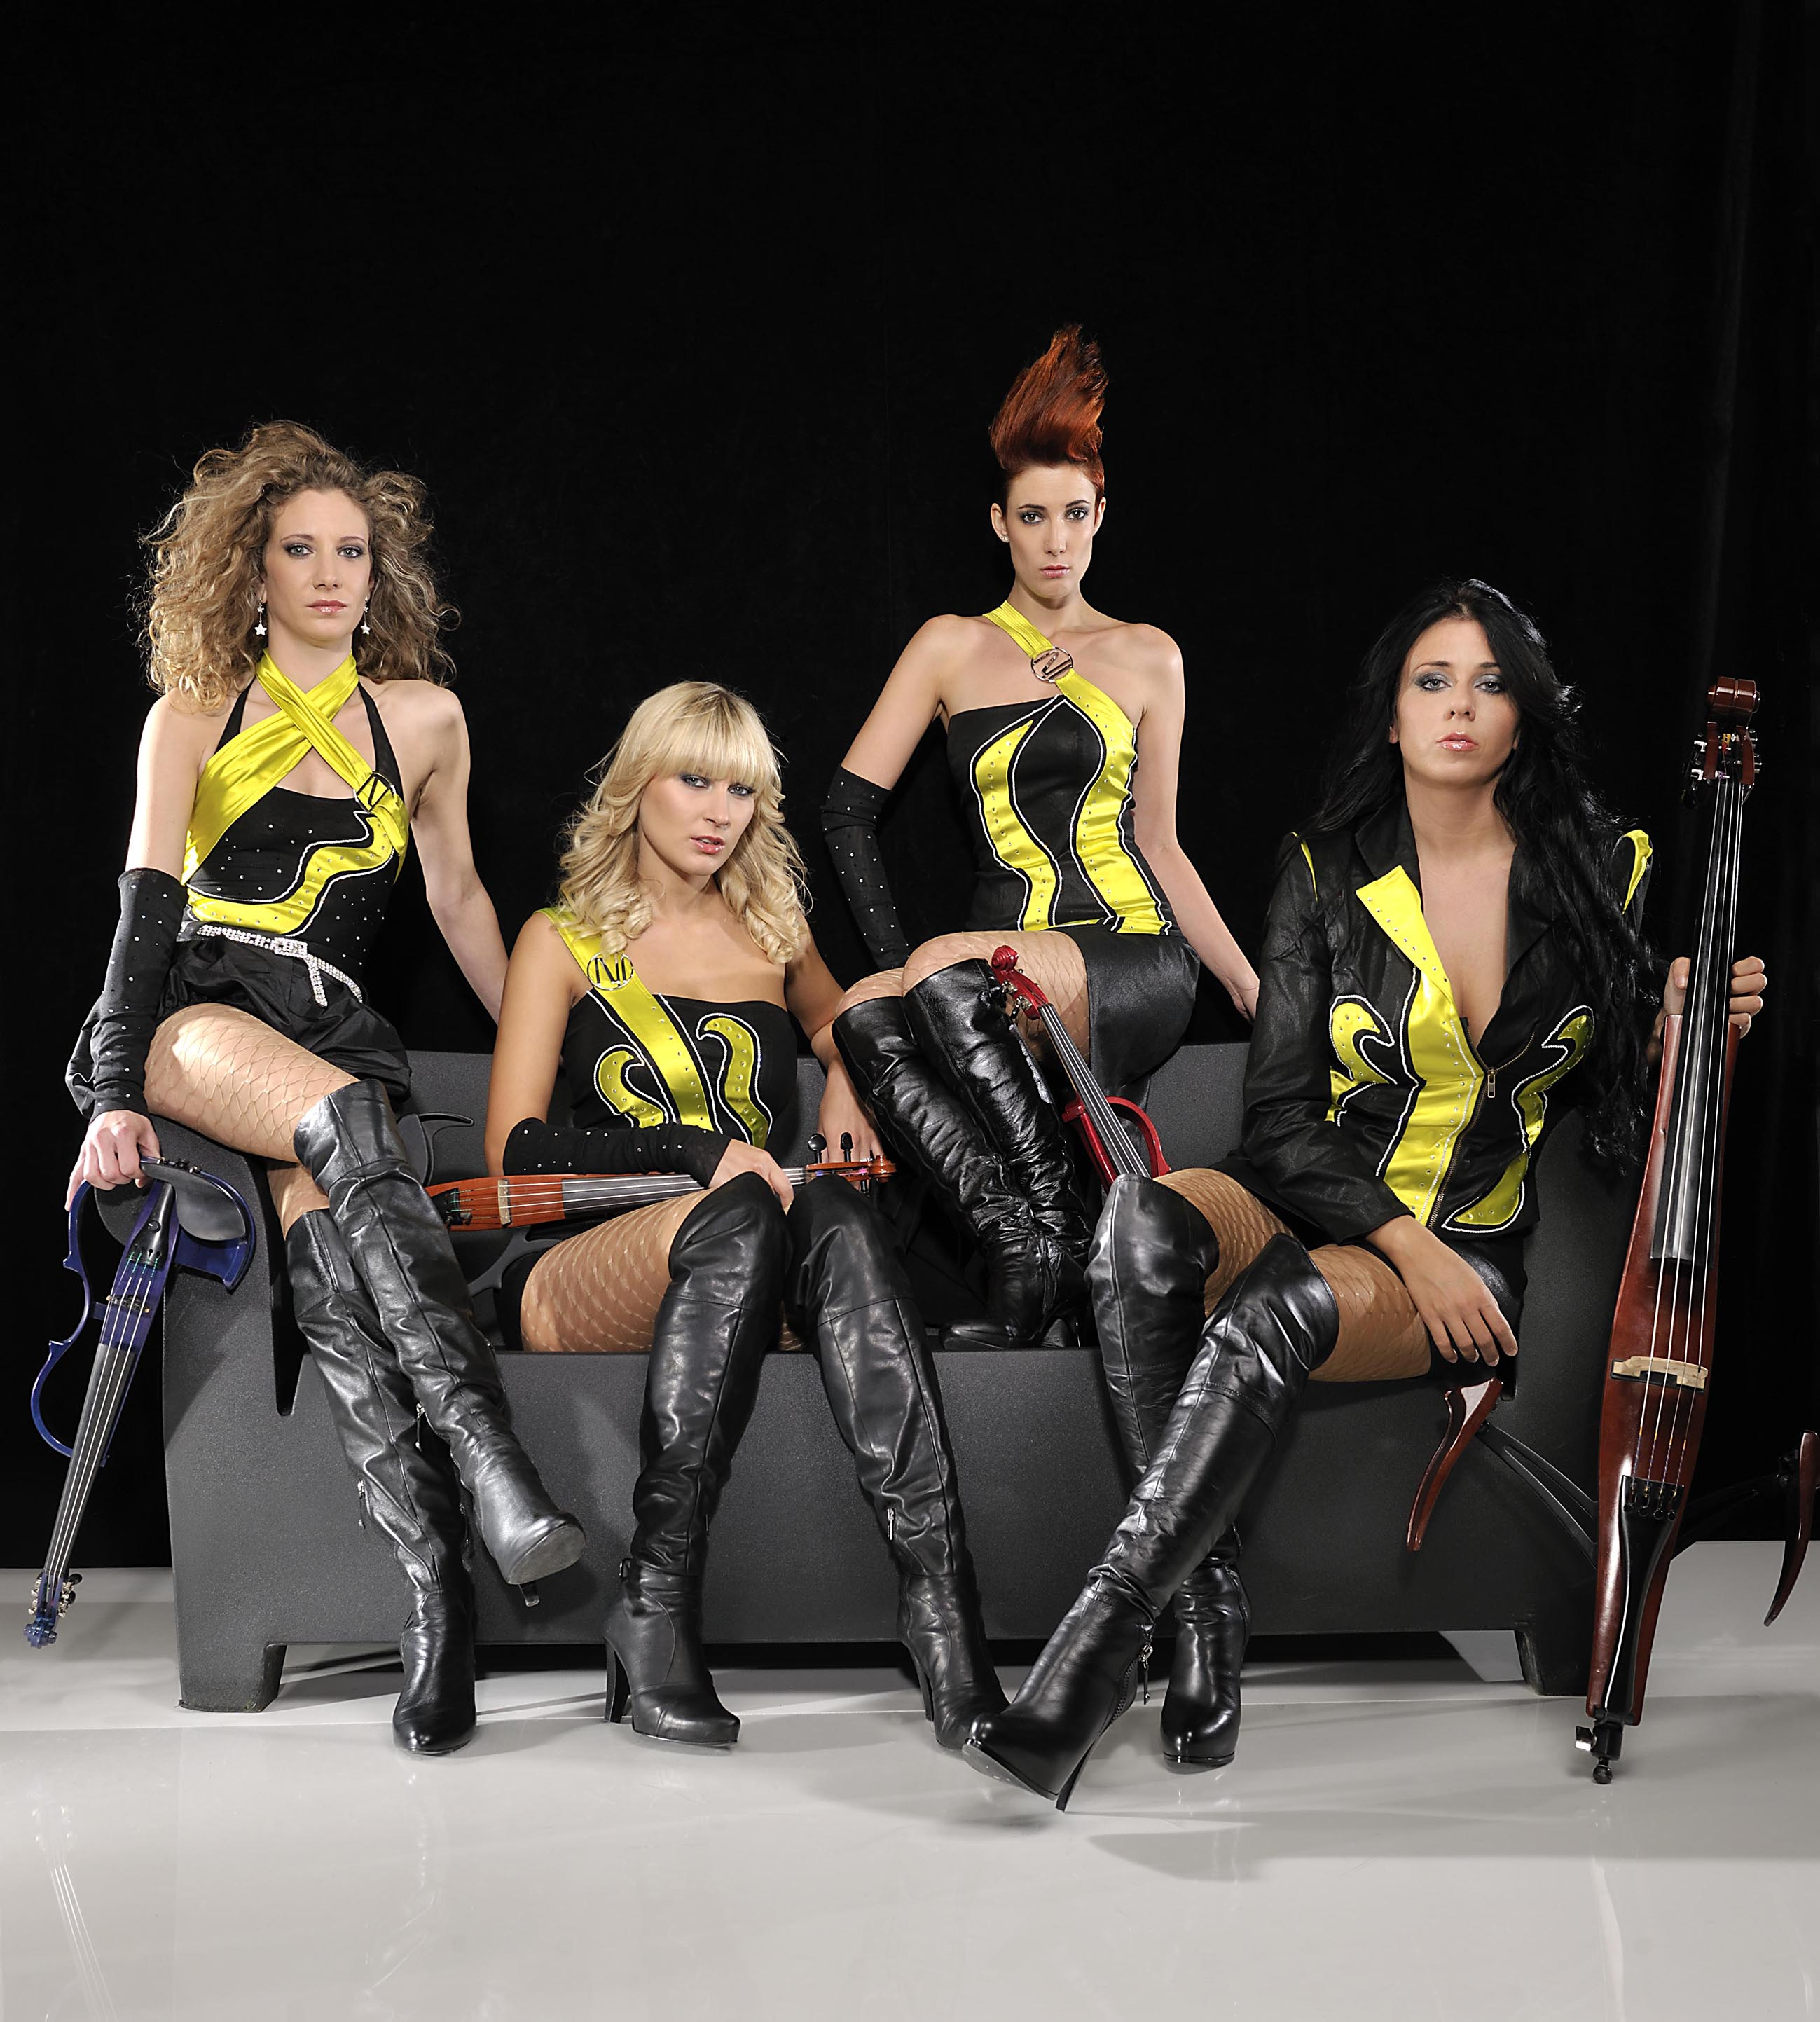 The Exclusive Strings /Photo:www.exclusivestrings.com